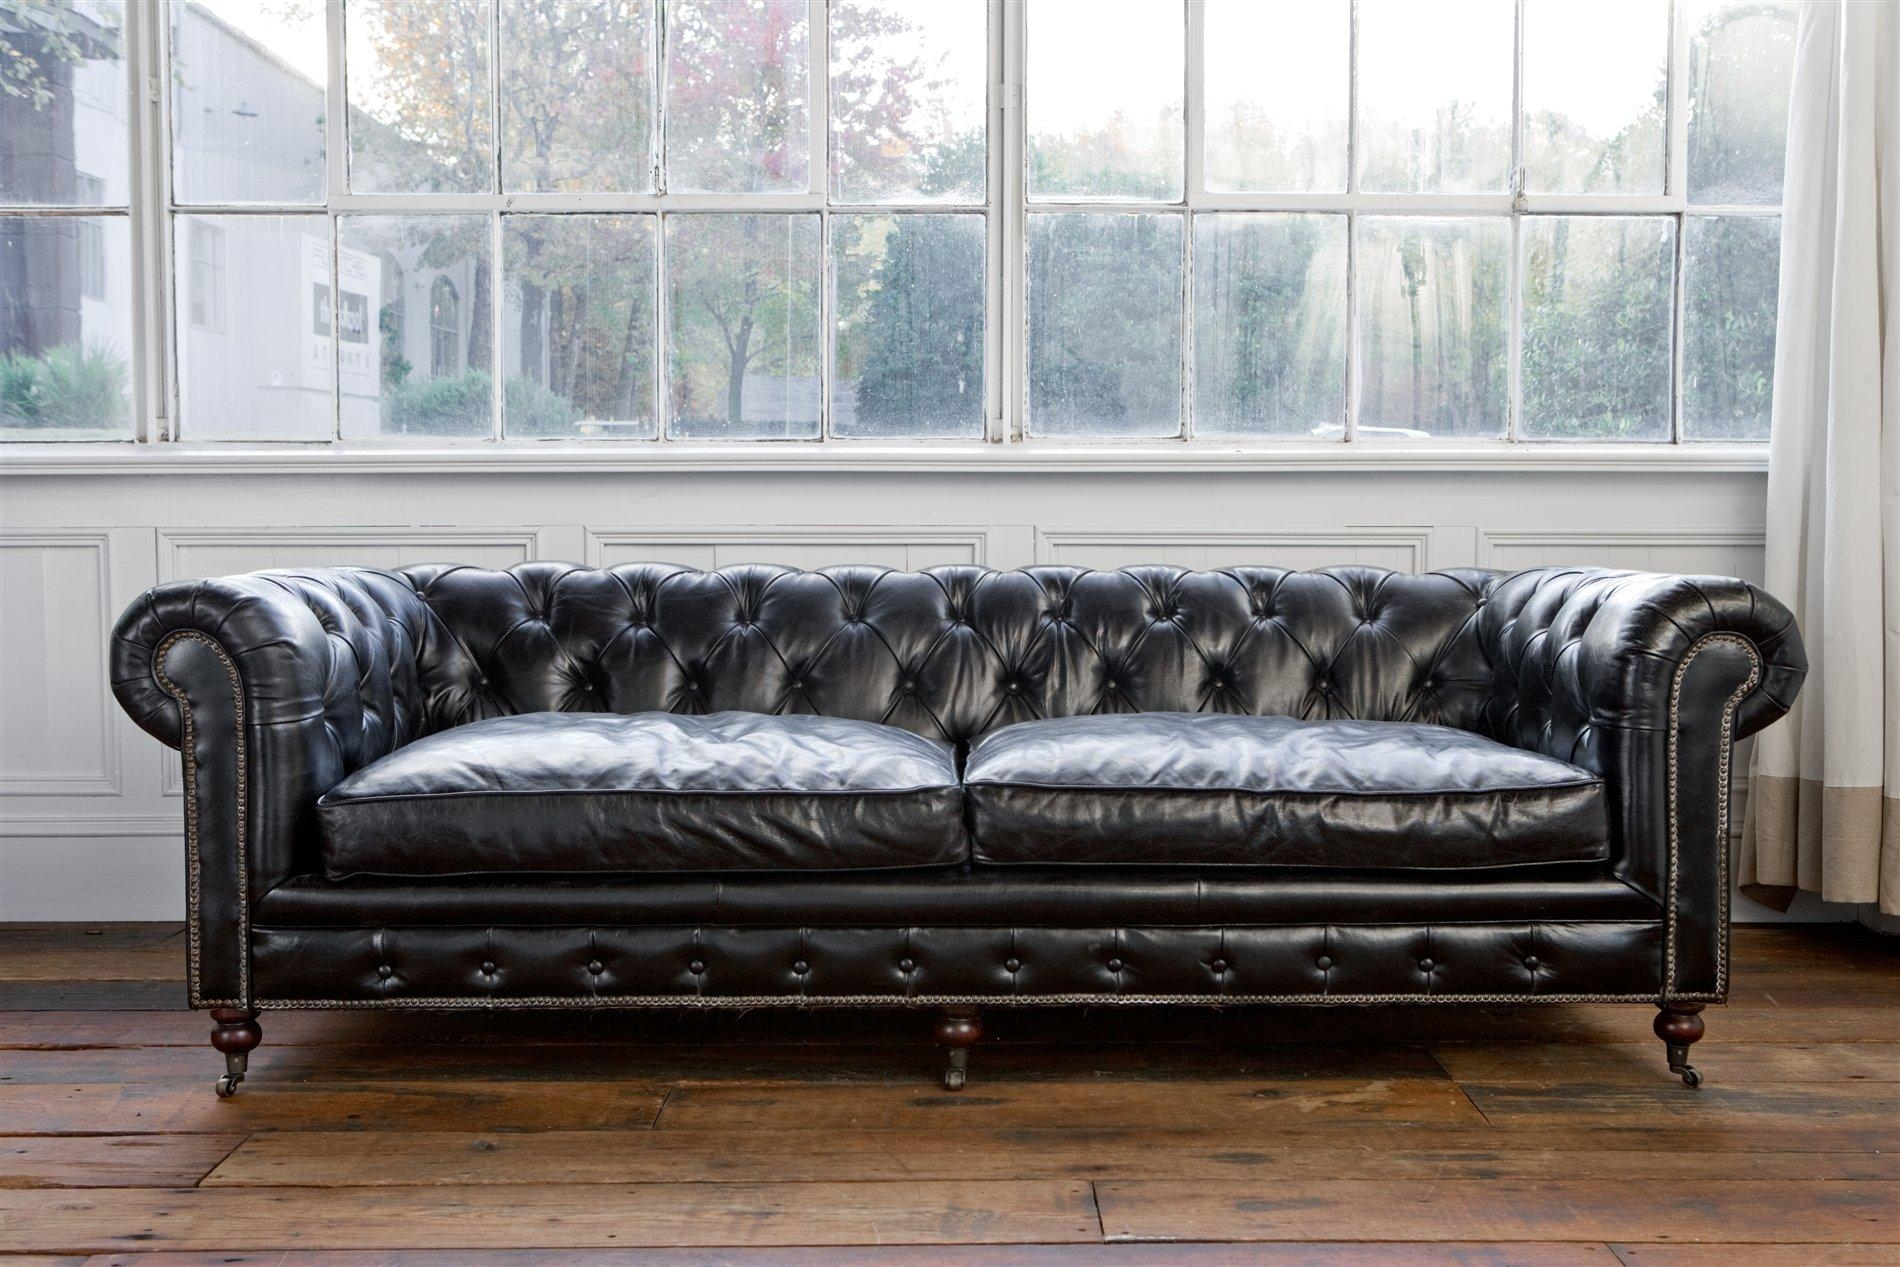 Sofas : Magnificent Black Leather Sofa L Shaped Sofa Cheap Tufted Pertaining To Chesterfield Black Sofas (View 13 of 20)